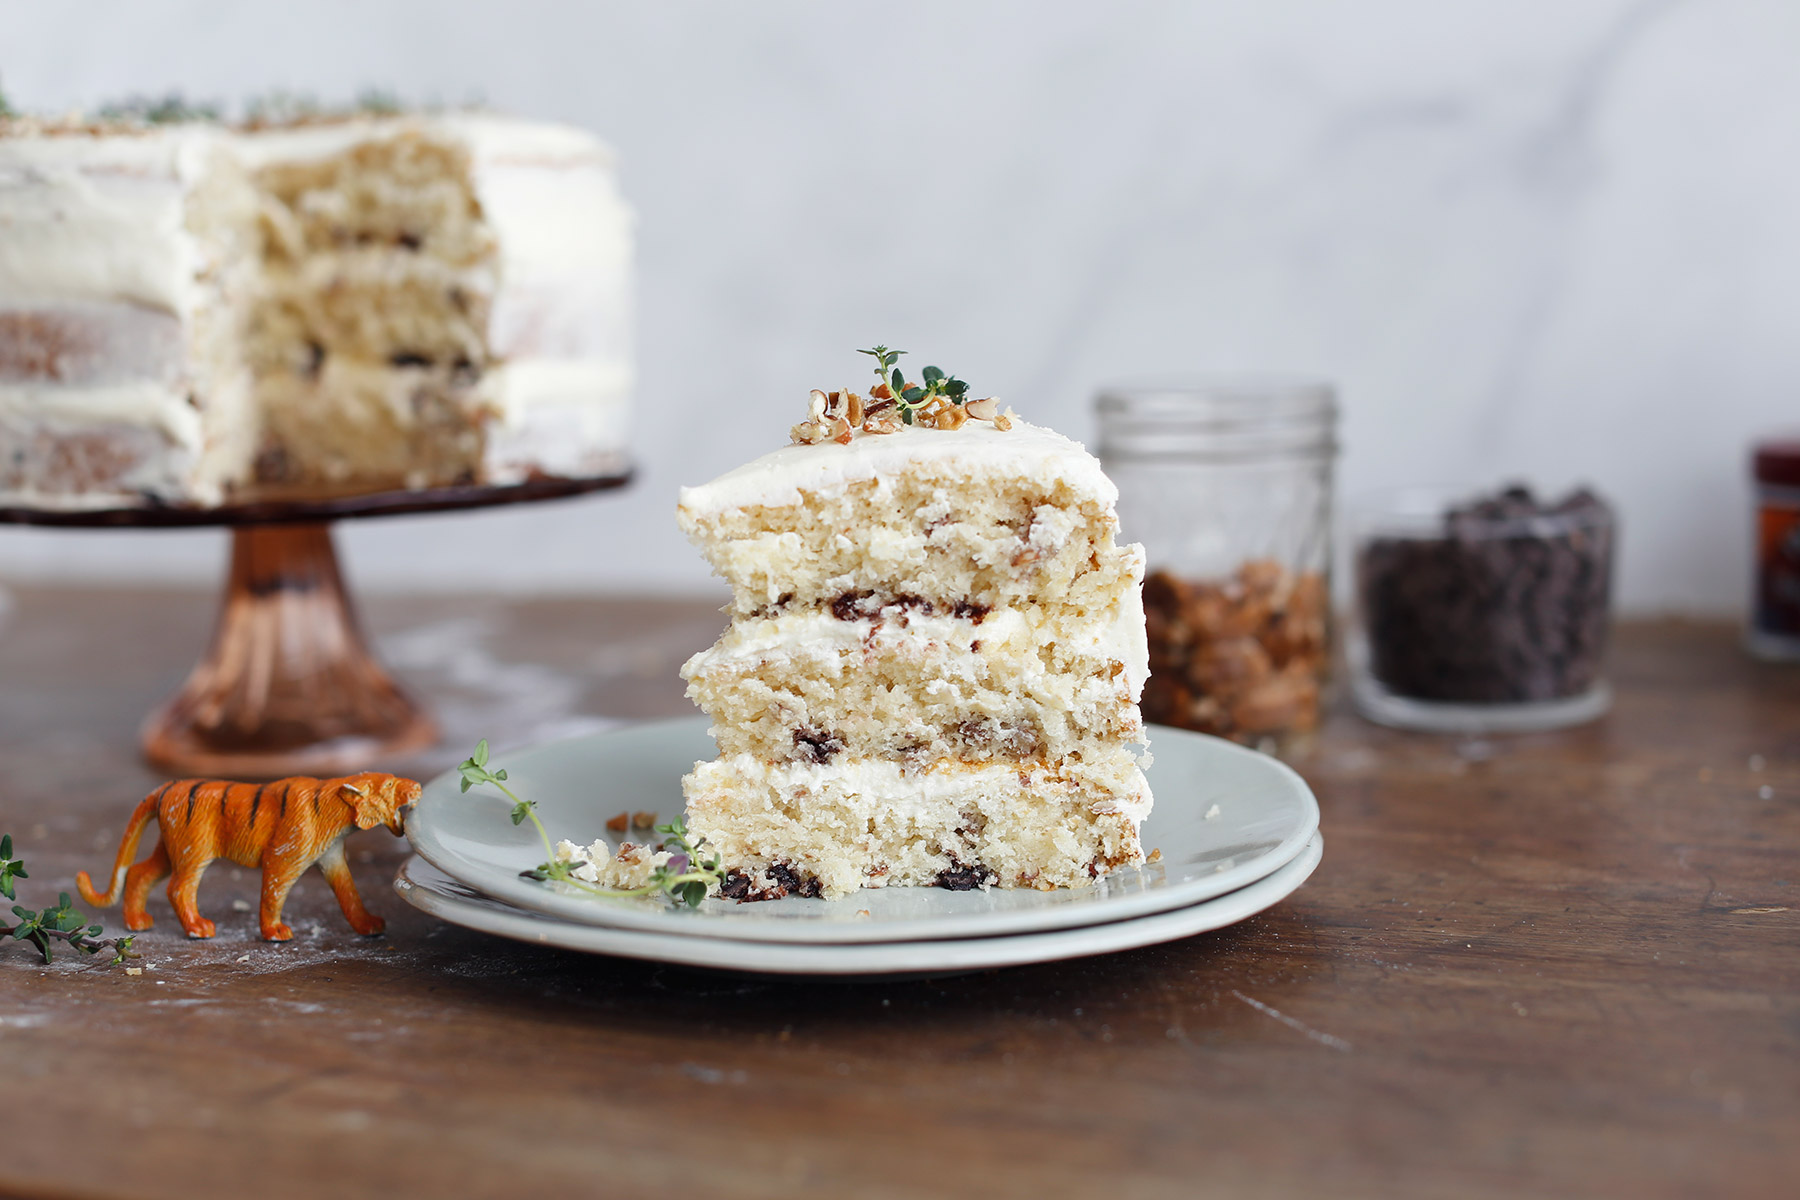 Pecan-Nut,-Chocolate-and-Maple-Syrup-Layer-Cake-14